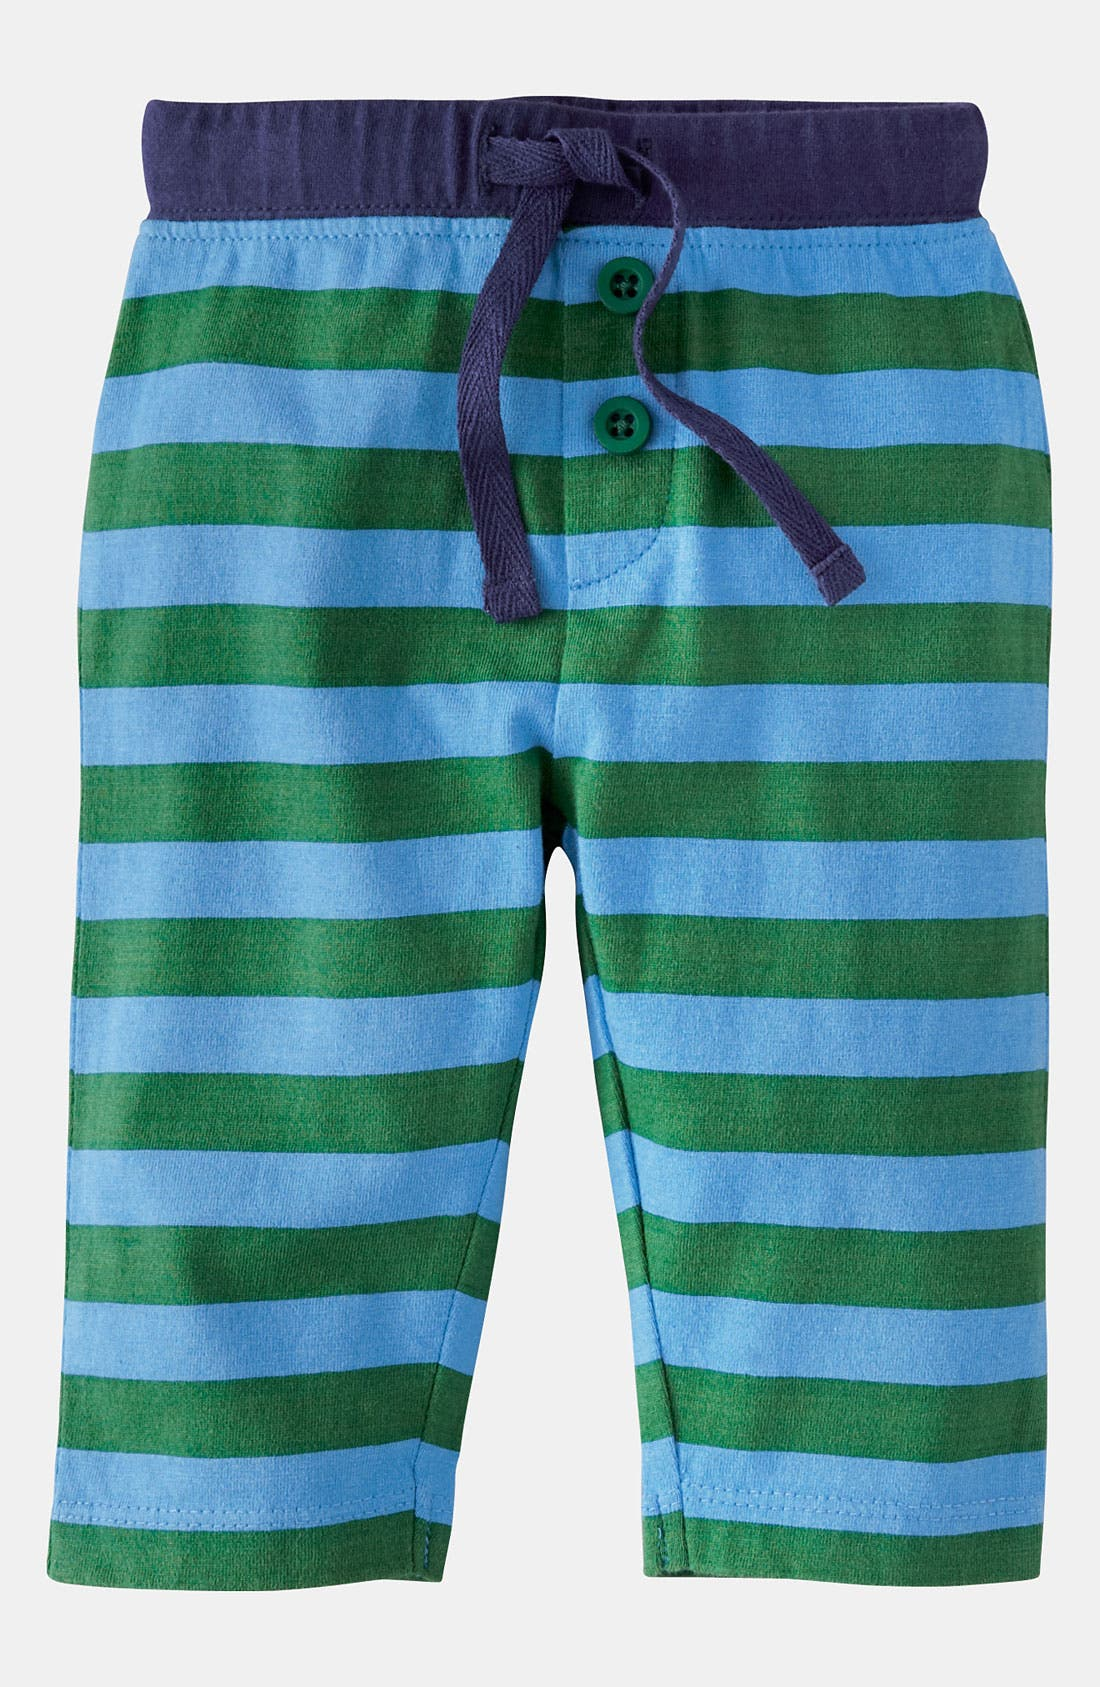 Alternate Image 1 Selected - Mini Boden 'Stripy' Jersey Pants (Baby)